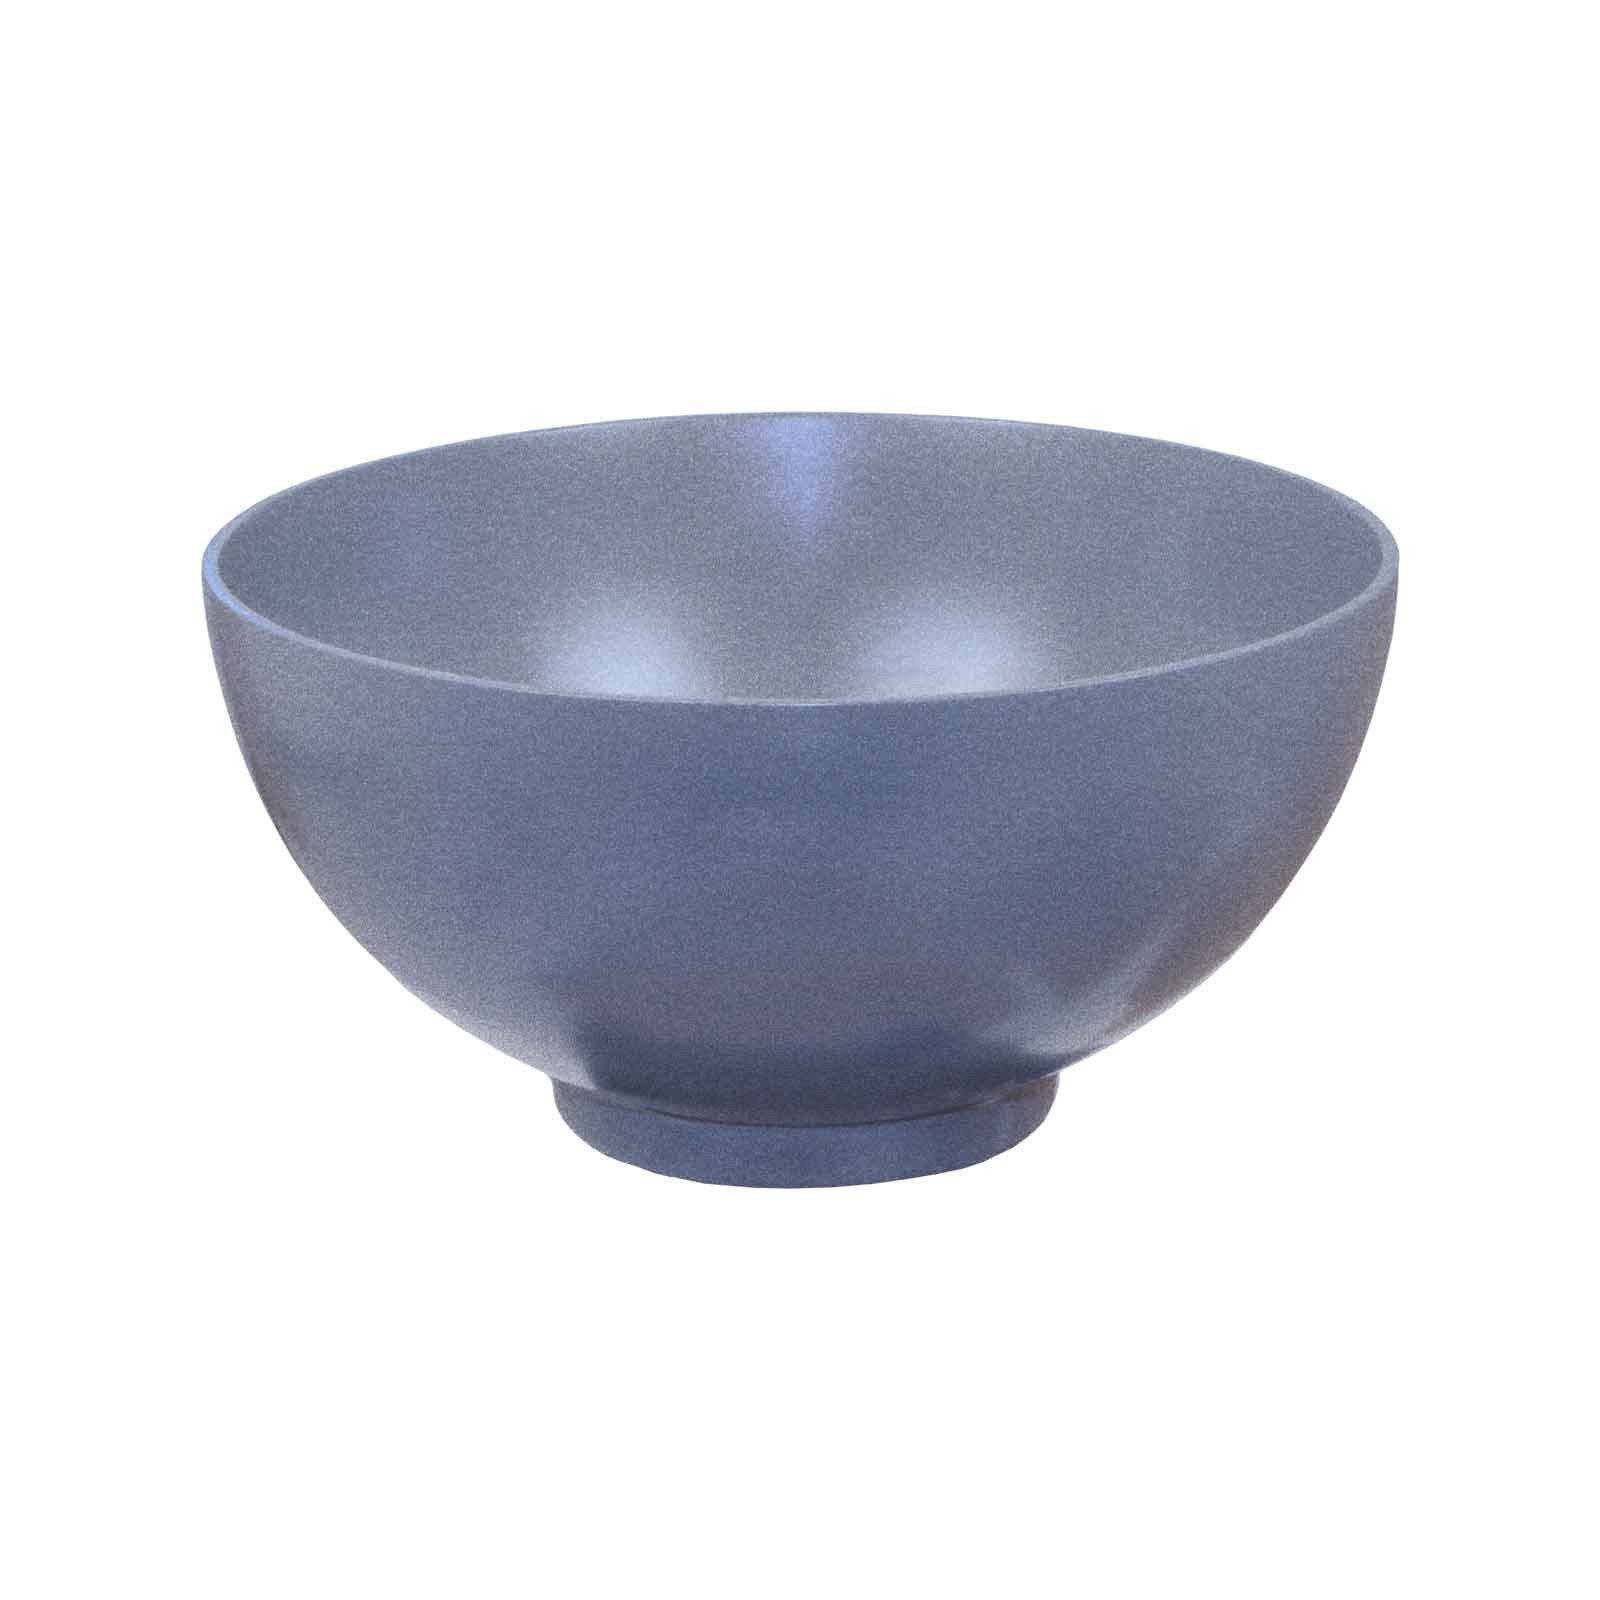 Bowl Planters - Fiberglass - 24'/36' Diameters